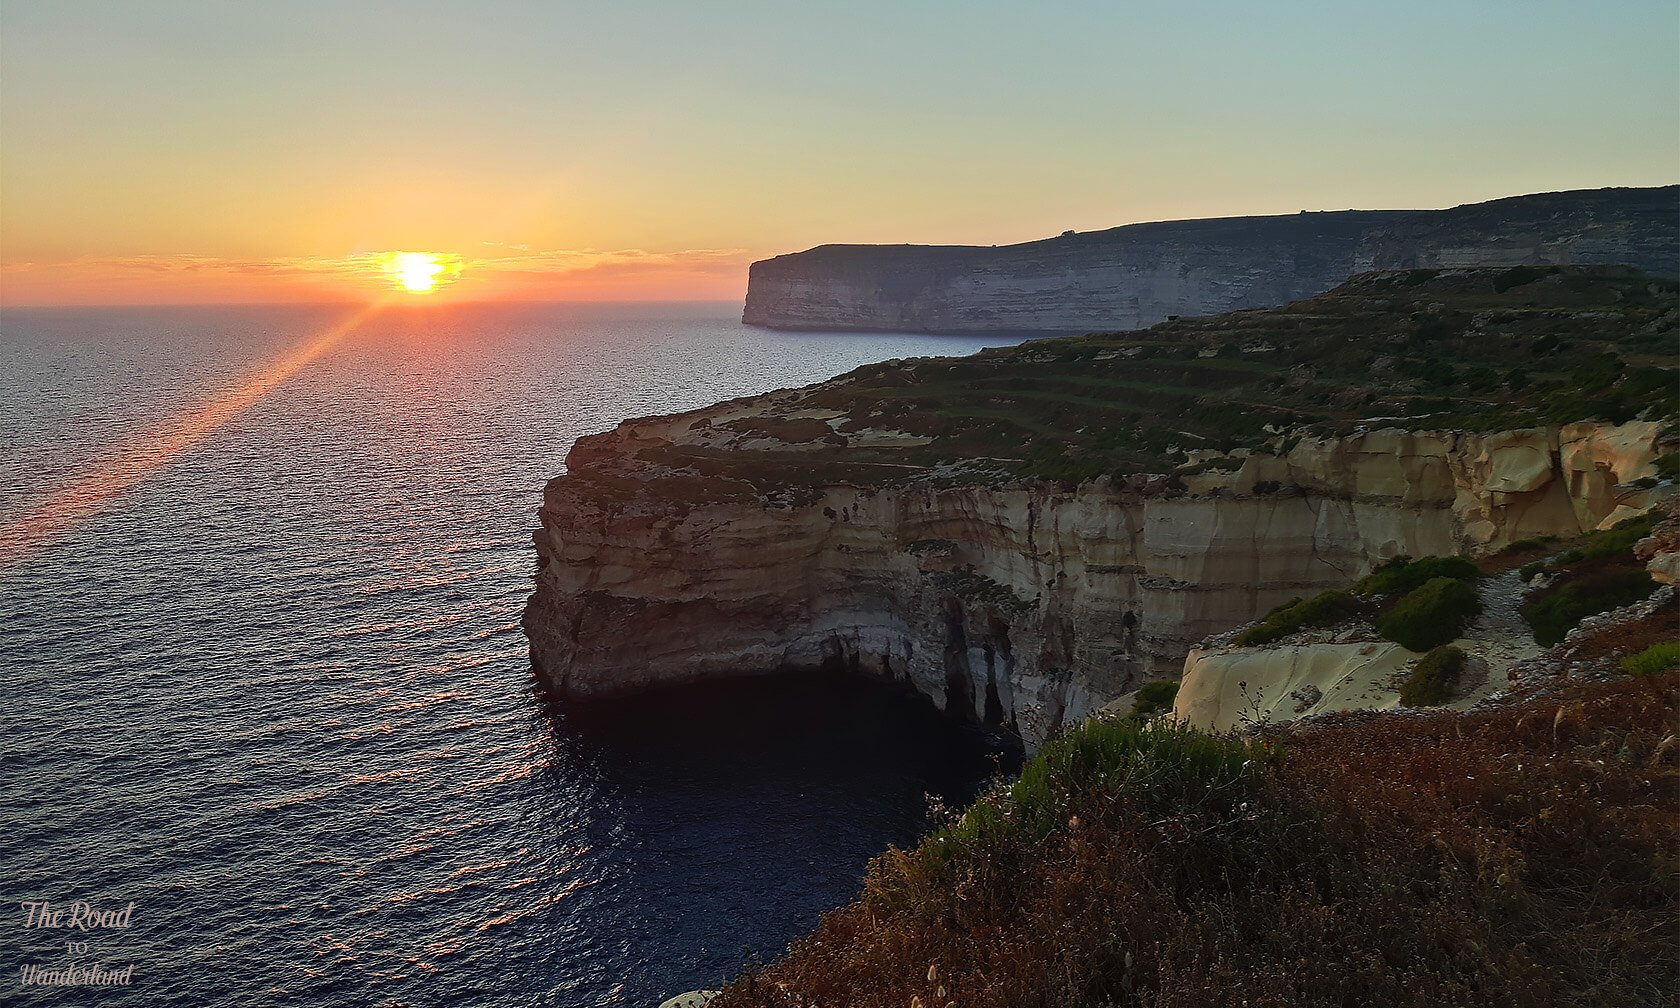 The sun setting beyond Xlendi cliffs